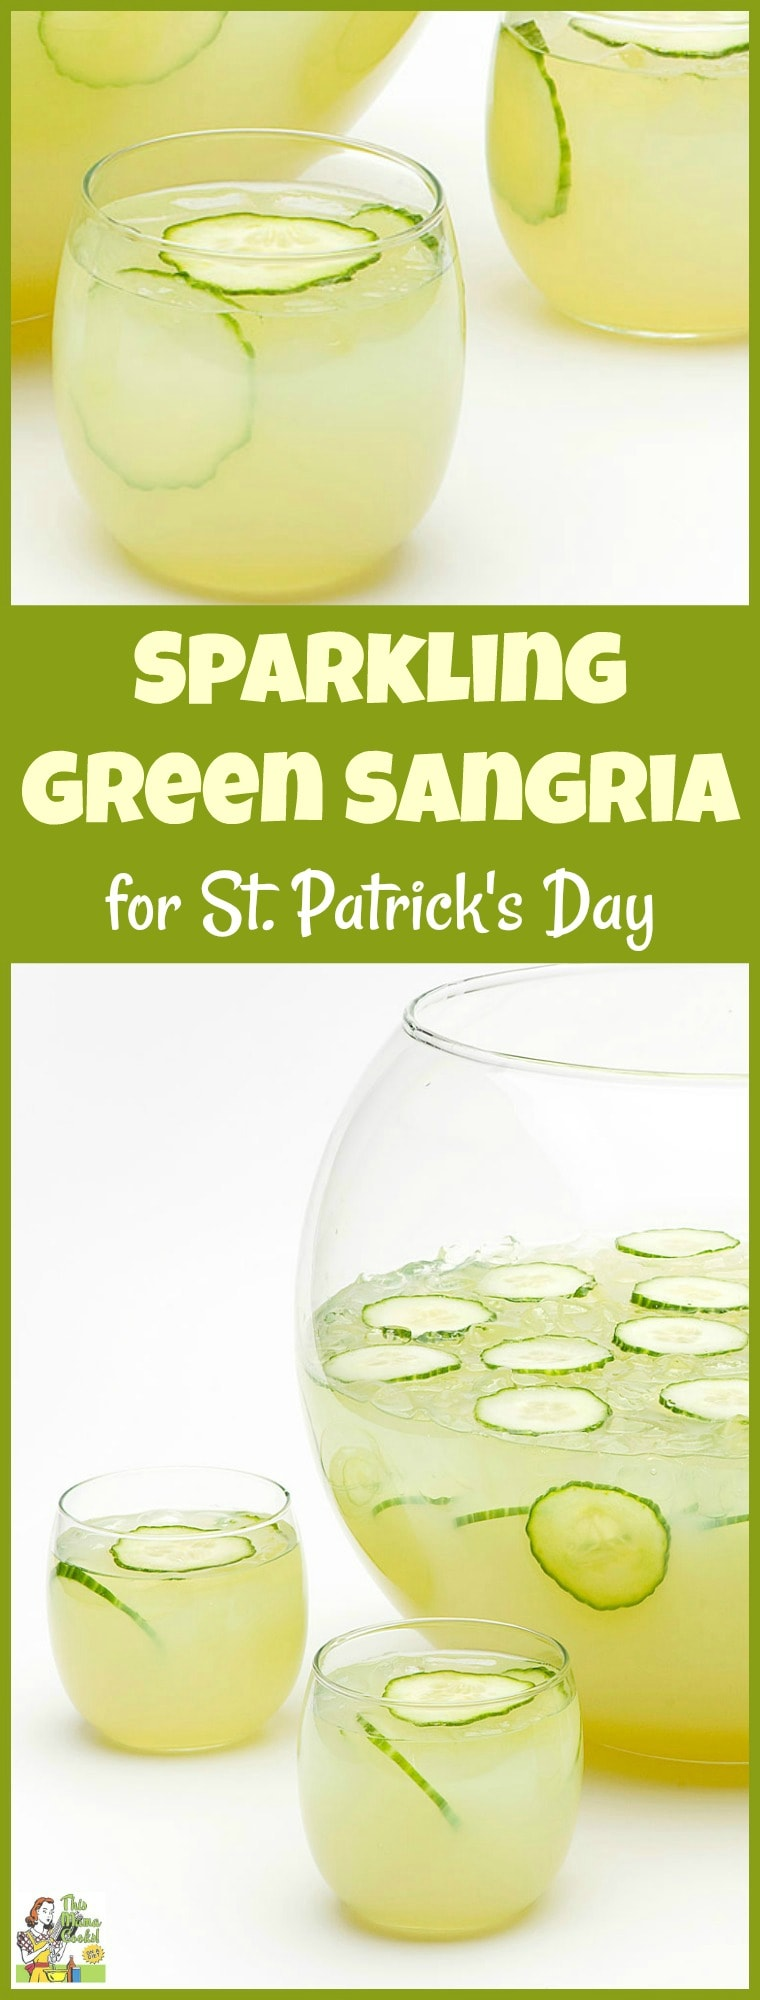 Gluten free or looking for an alternative to heavy Guinness or yucky green beer? Try this refreshing gluten free Sparkling Green Sangria recipe for St. Patrick's Day. It's a skinny green cocktail alternative! Your party guests will love this green St. Patrick's Day drink recipe! #stpatricksday #green #drinking #drinks #drinksrecipe #cocktails #sangria #skinnyrecipes #healthydrinks #healthydrinksrecipe #glutenfree